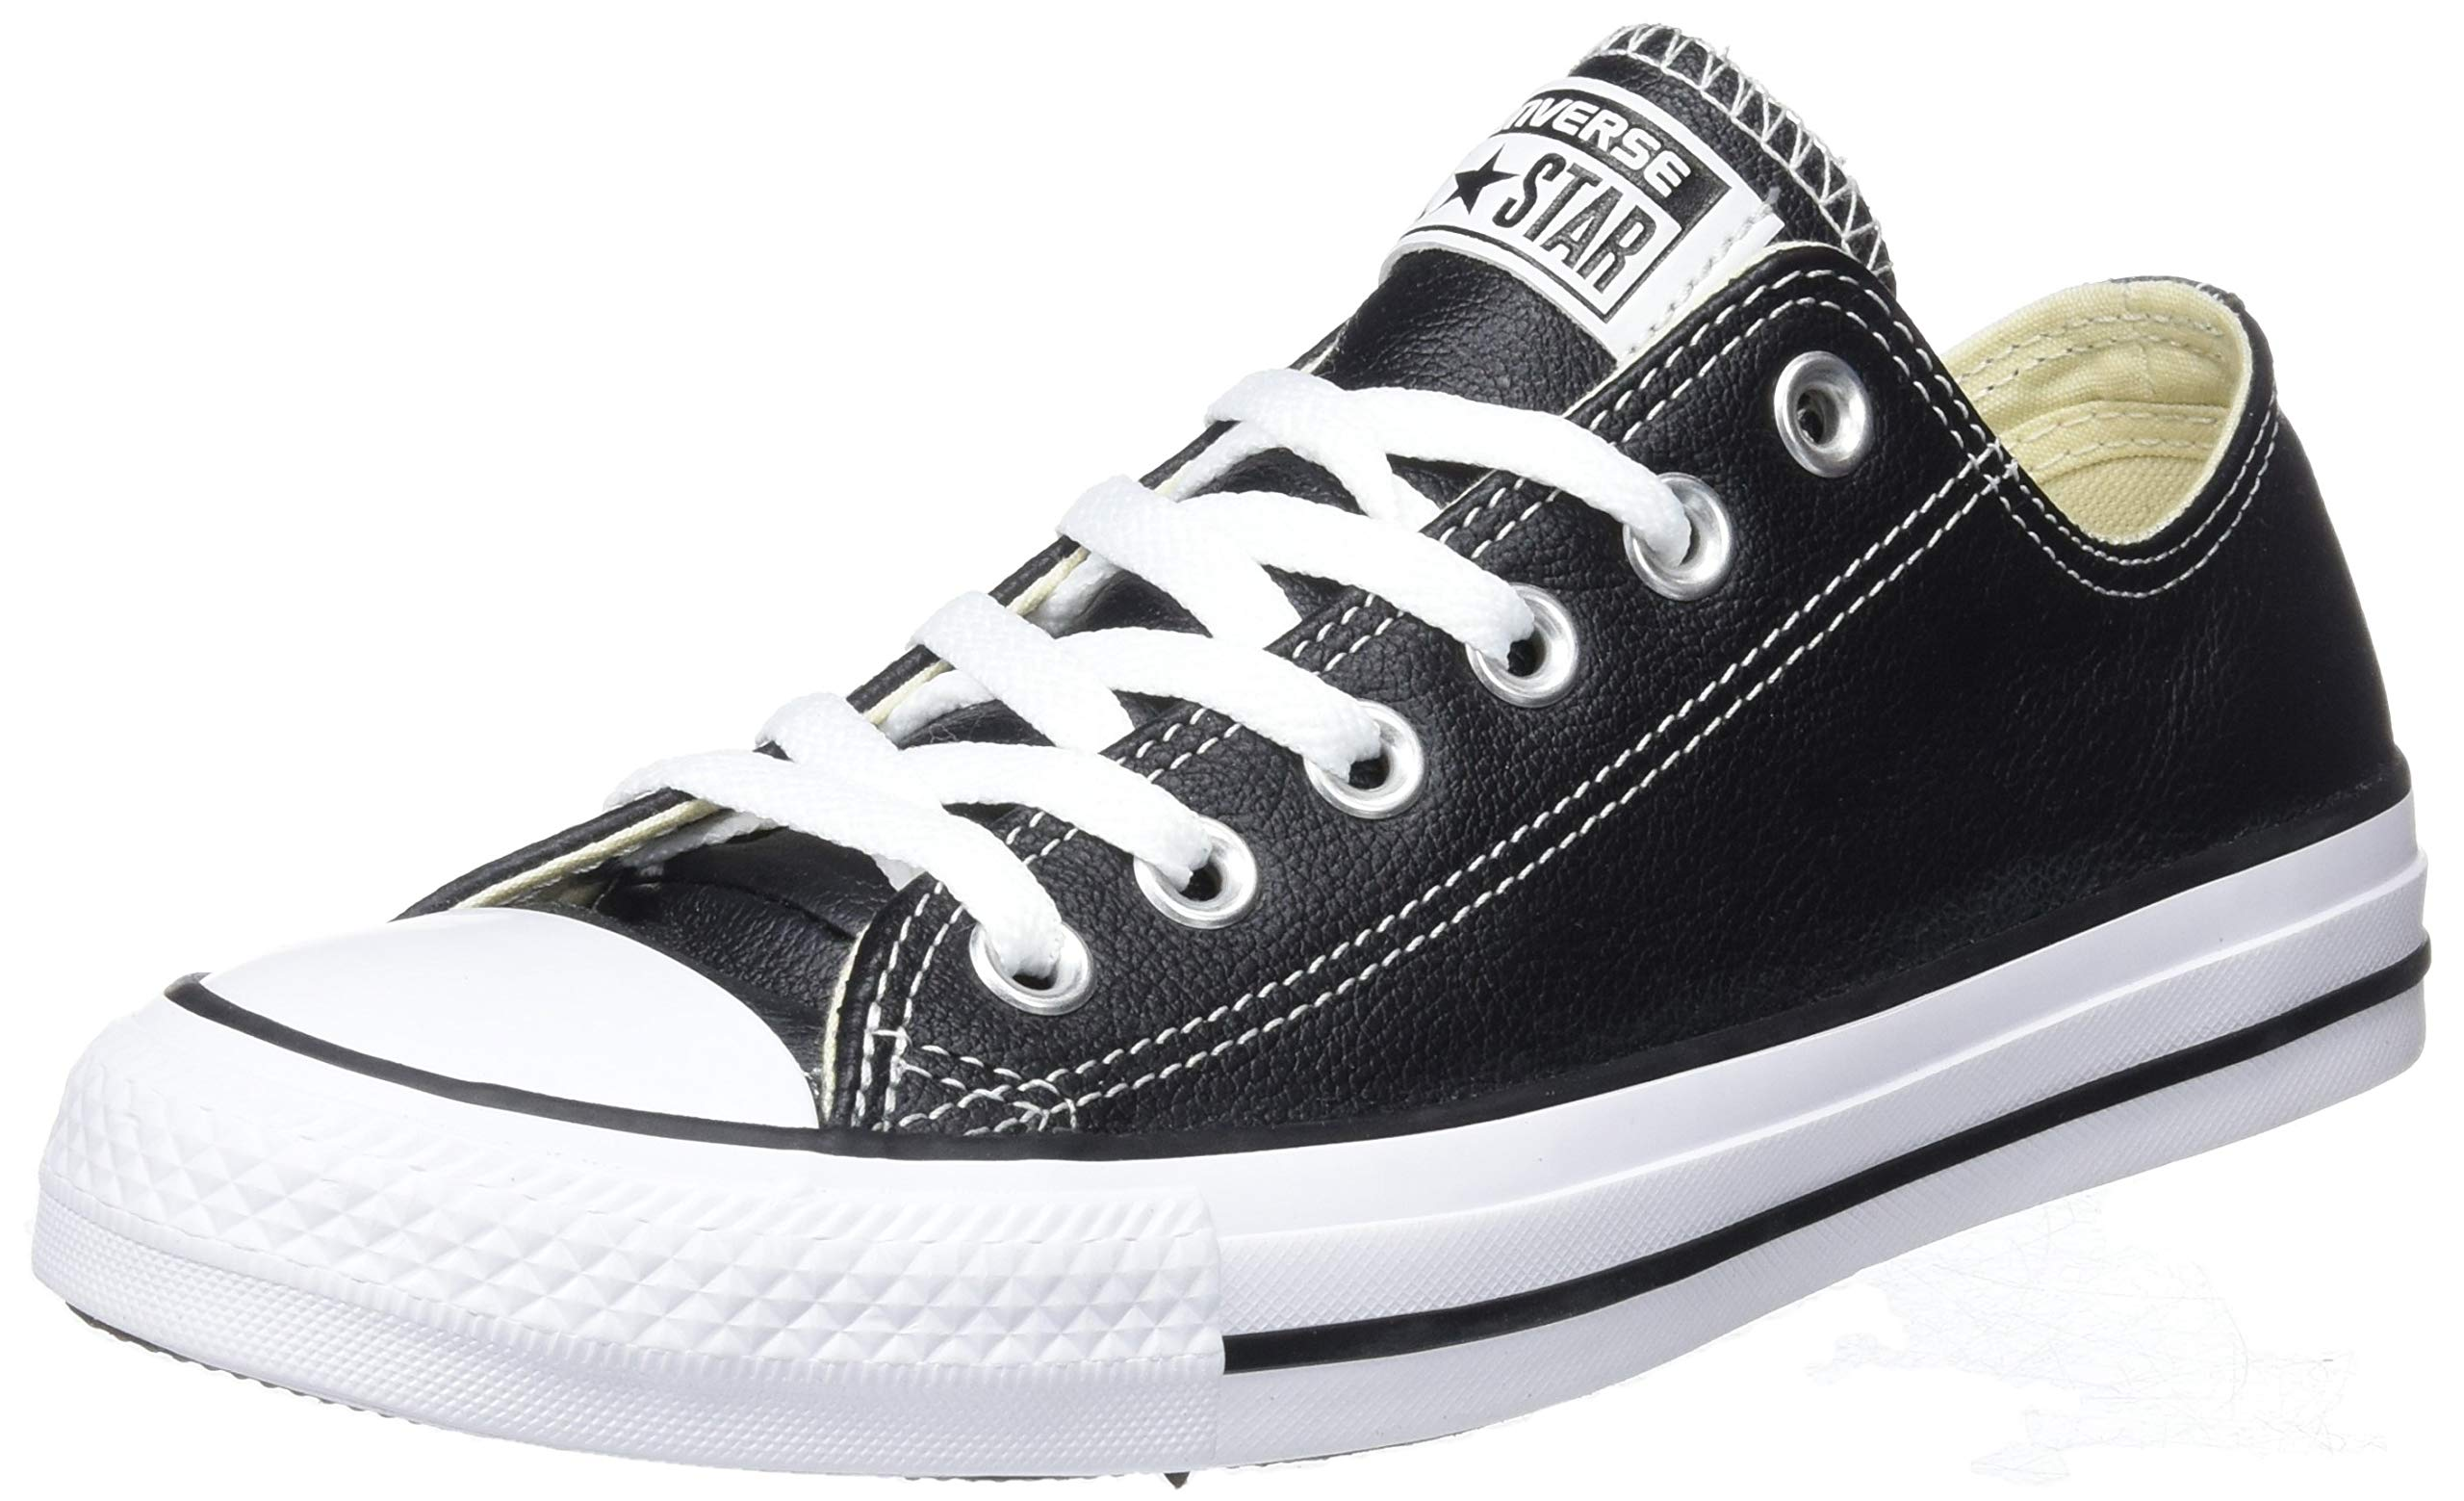 Converse Unisex Chuck Taylor All Star Low Top Leather Black Sneaker - 4 Men - 6 Women